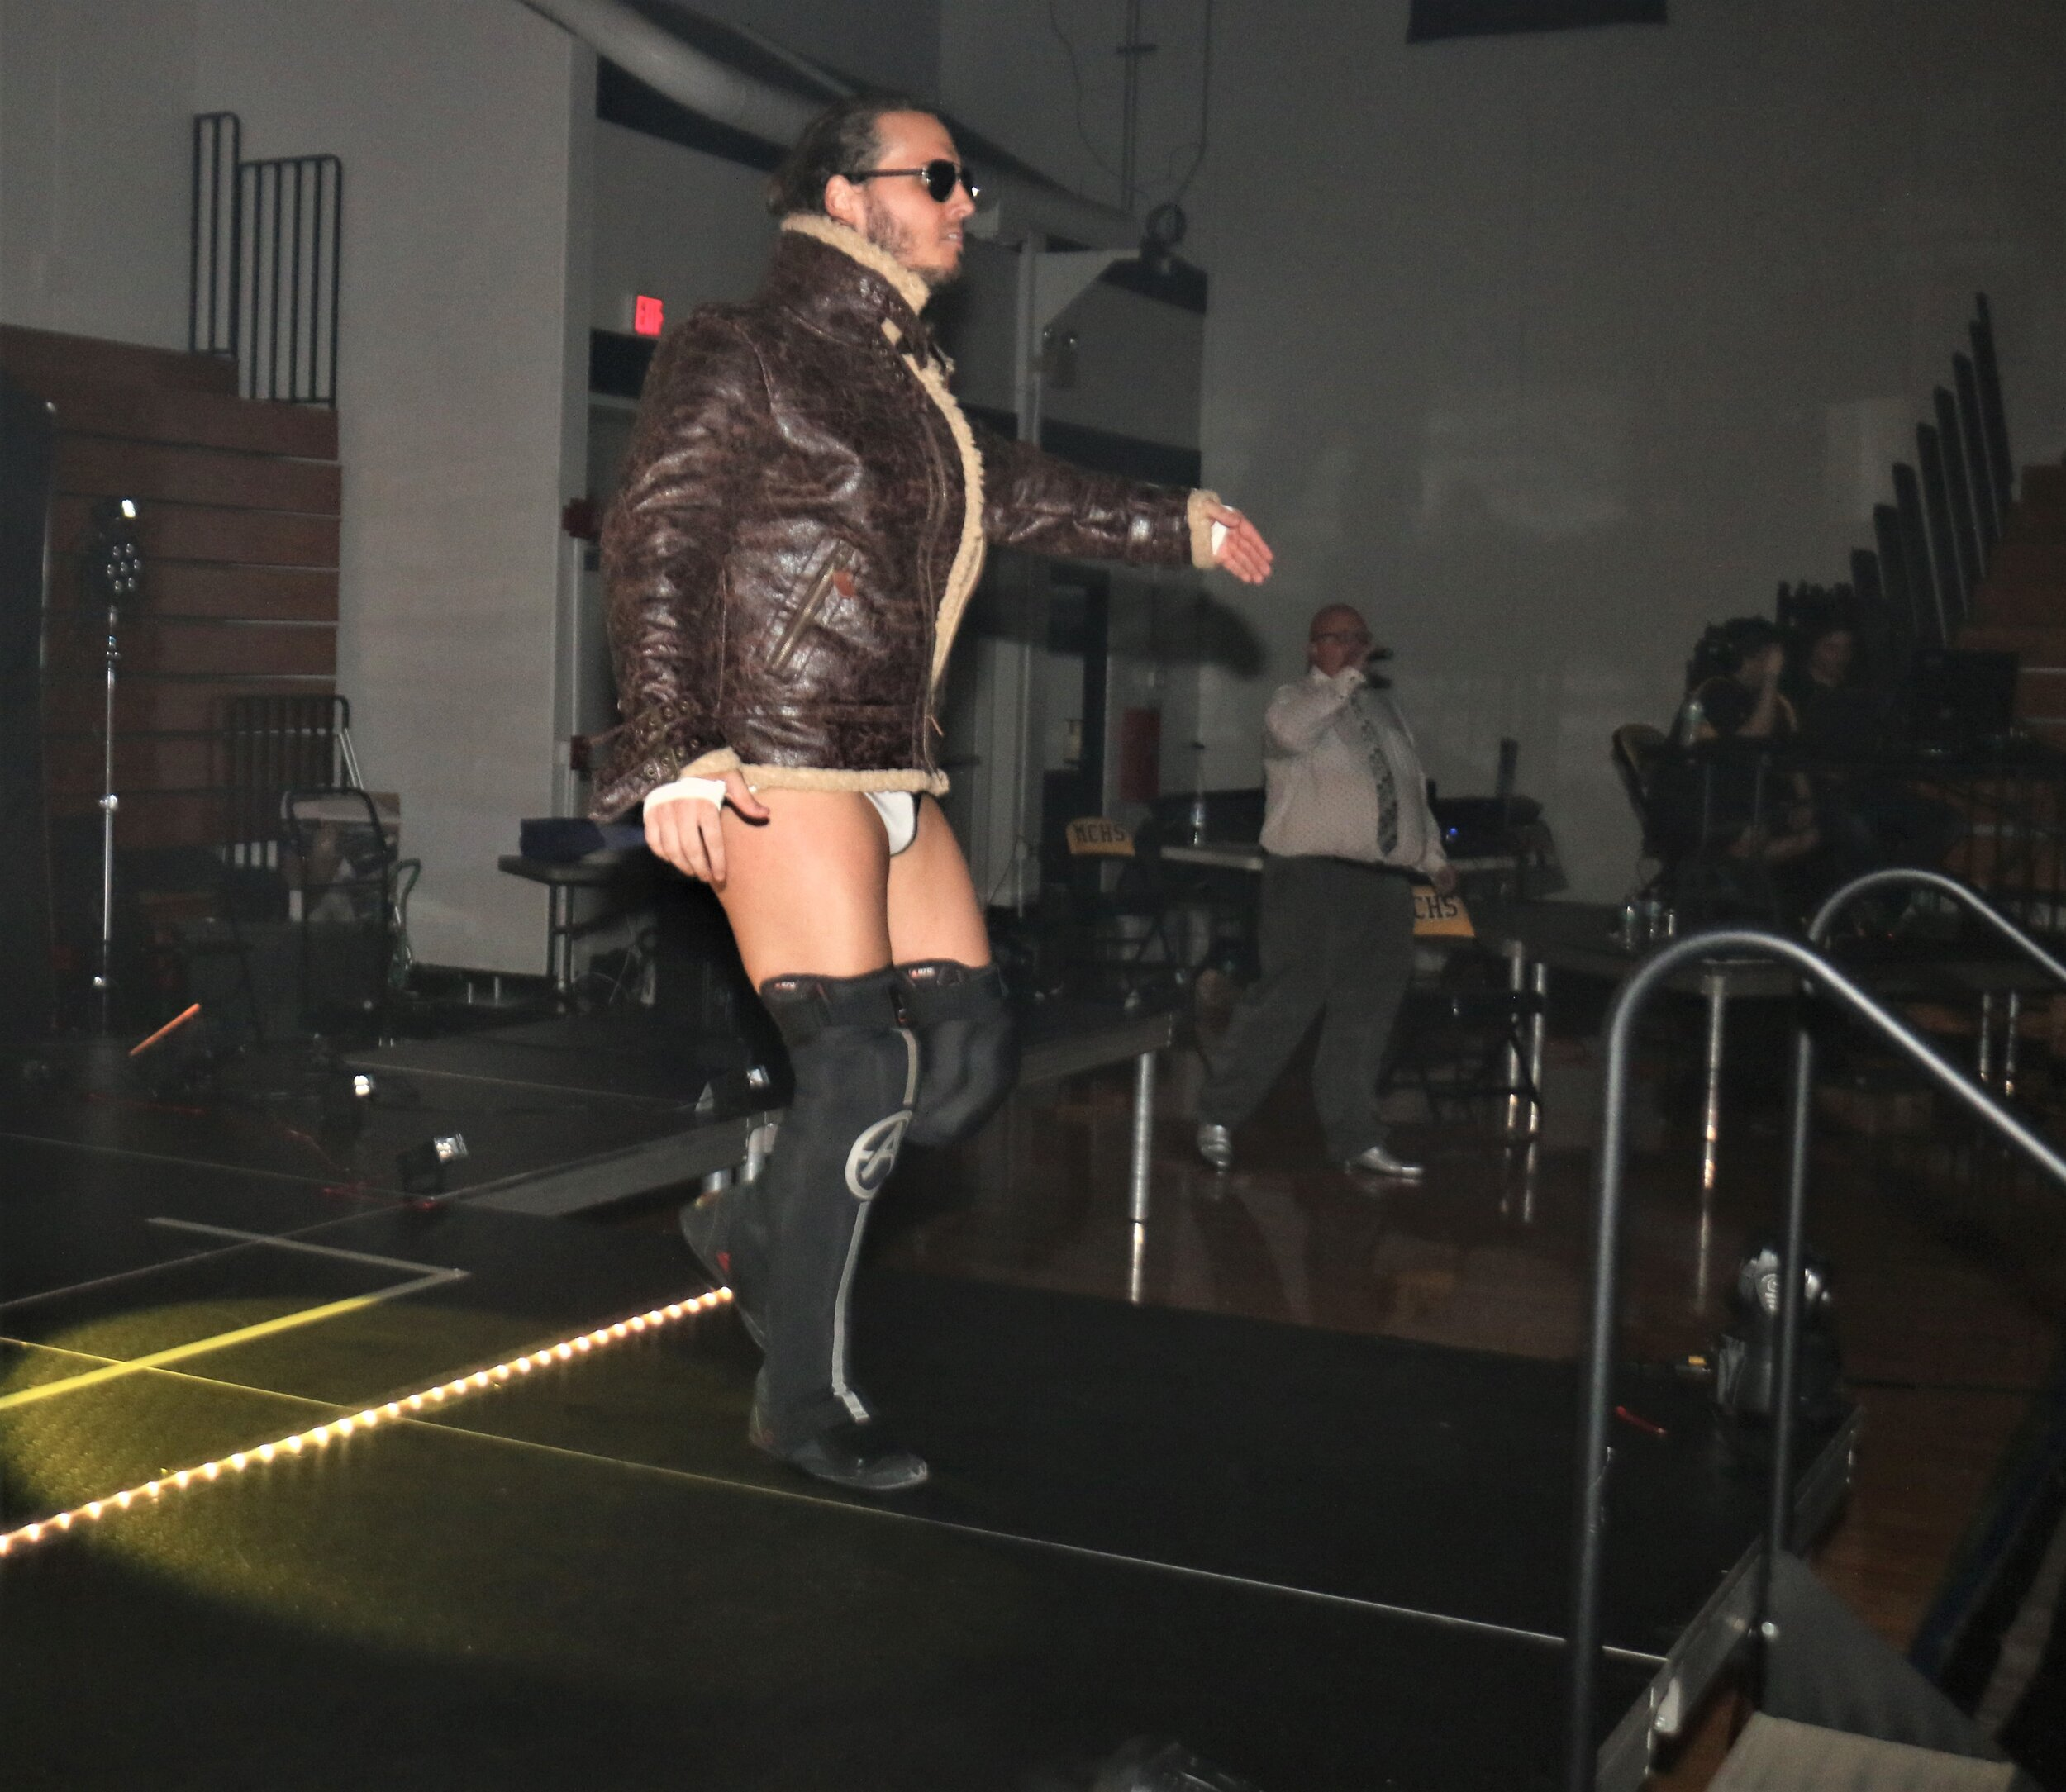 Andrew Everett enters the arena for his match against Dragon Lee.